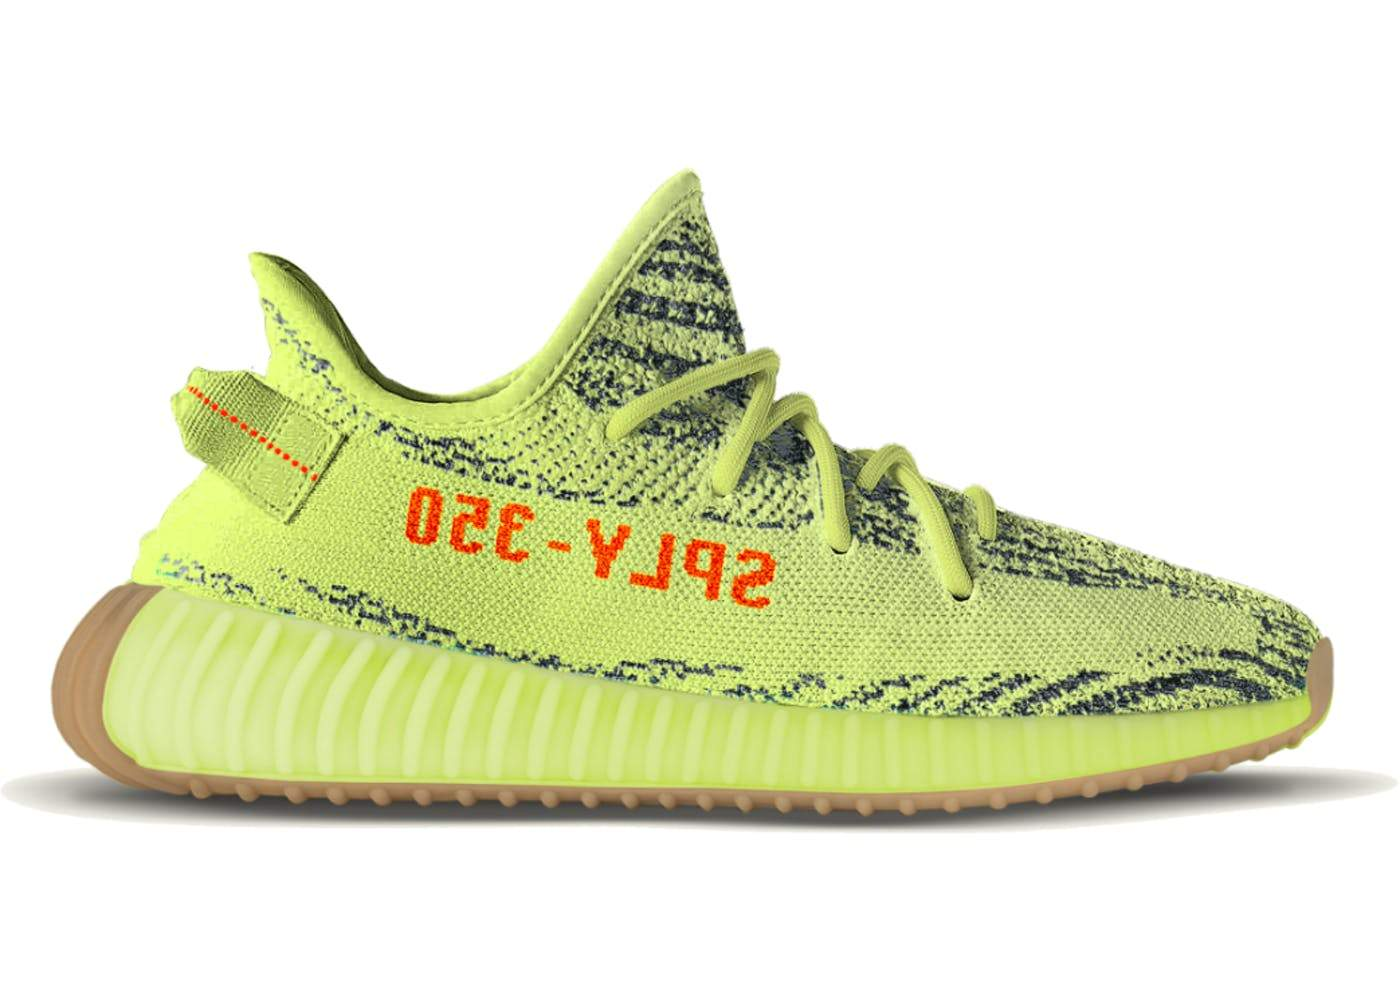 new style 2d002 33f2e Adidas Yeezy Boost 350 V2 Semi Frozen Yellow